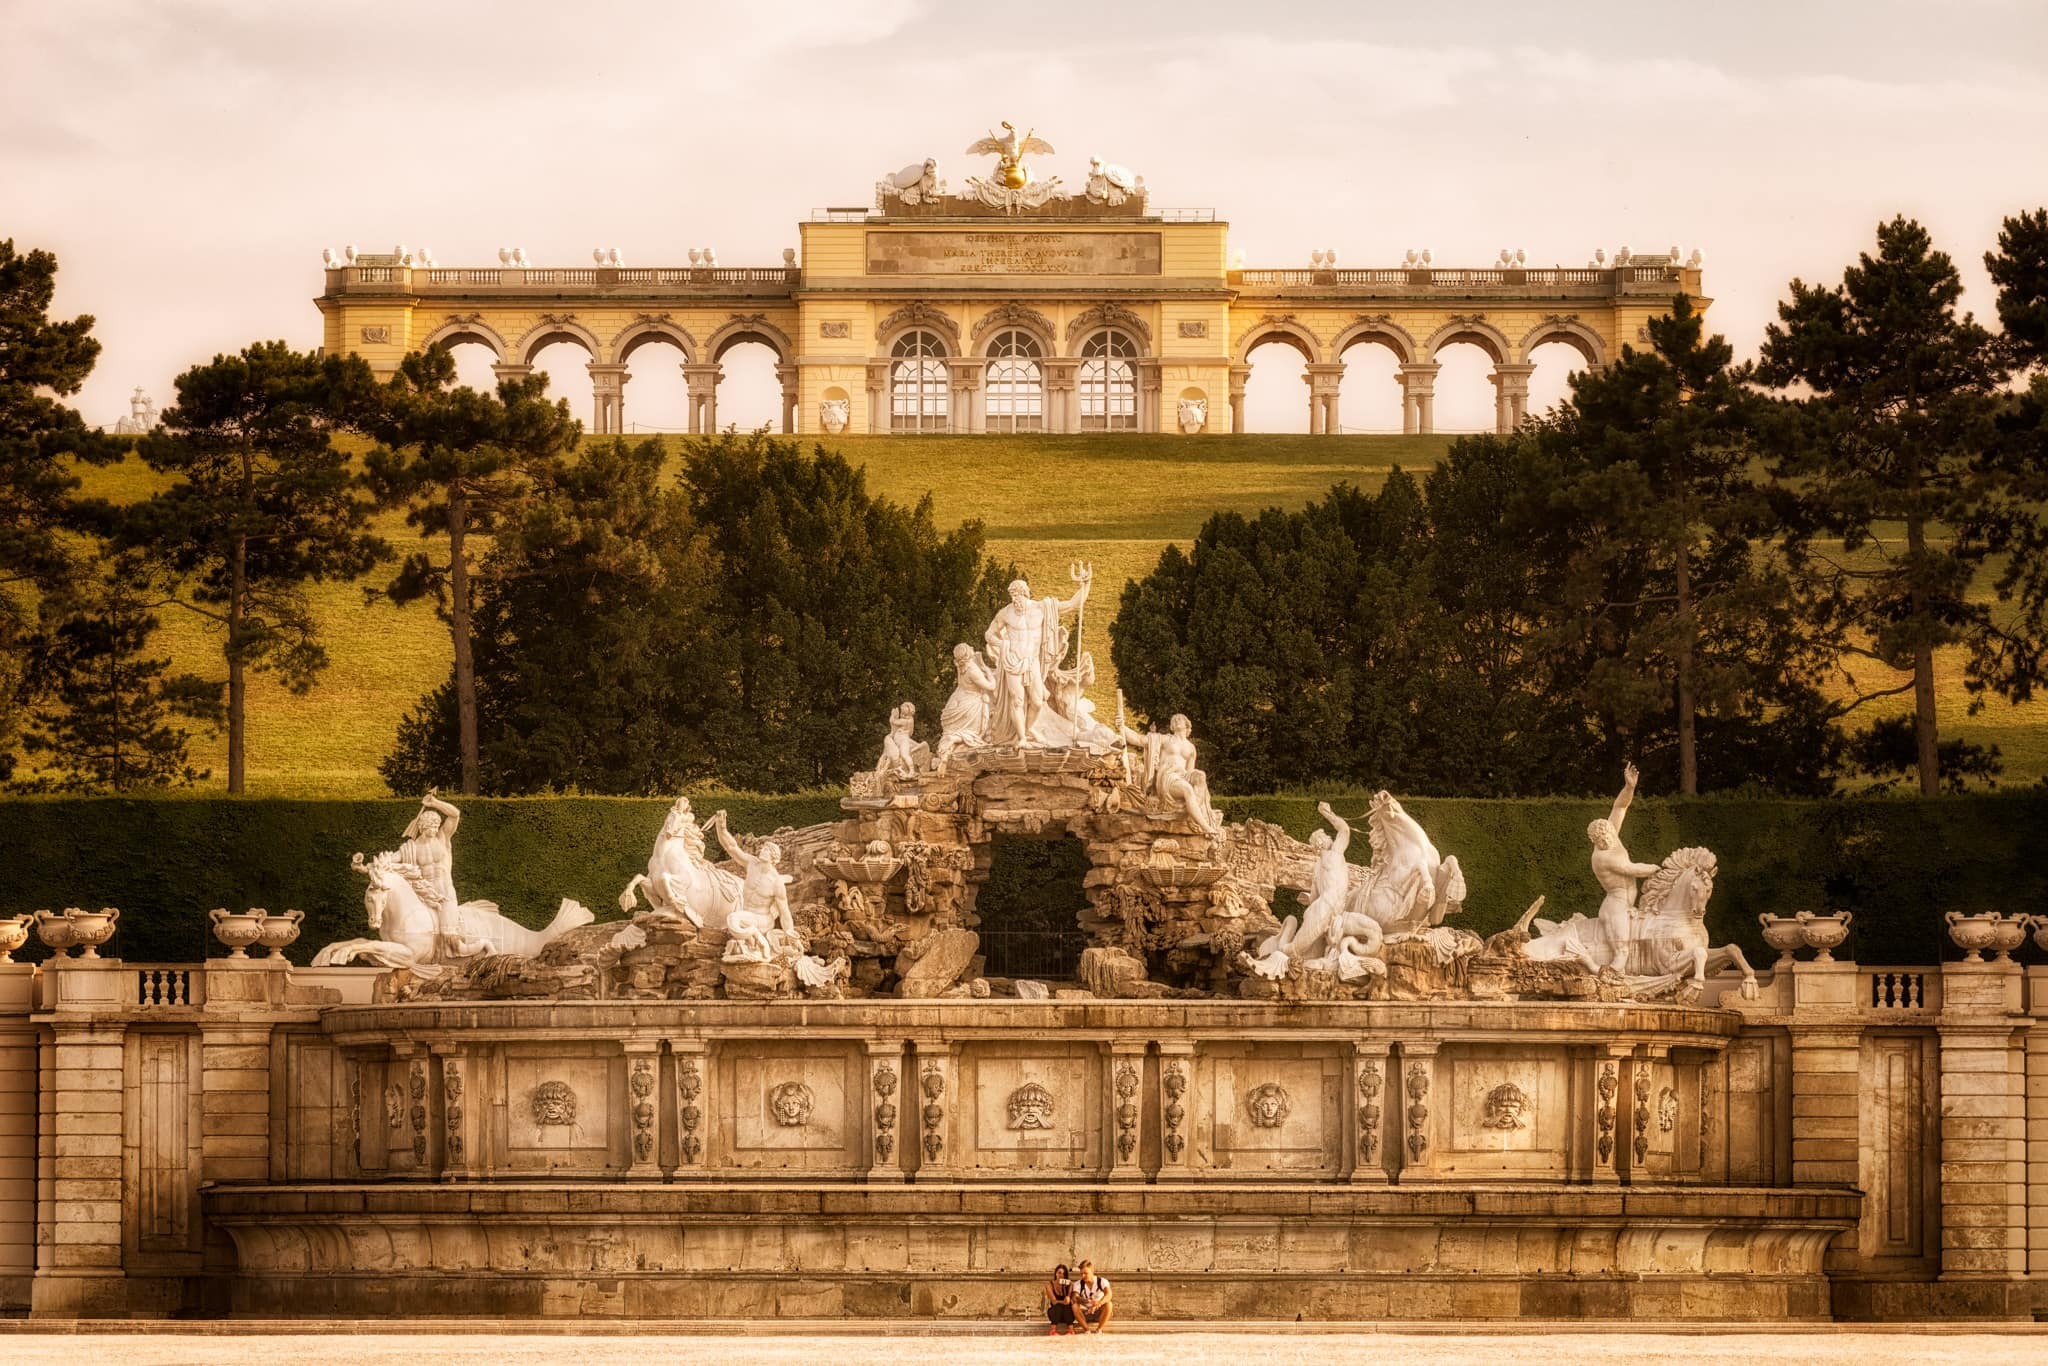 The Gloriette and The Neptune Fountain | Vienna, Austria